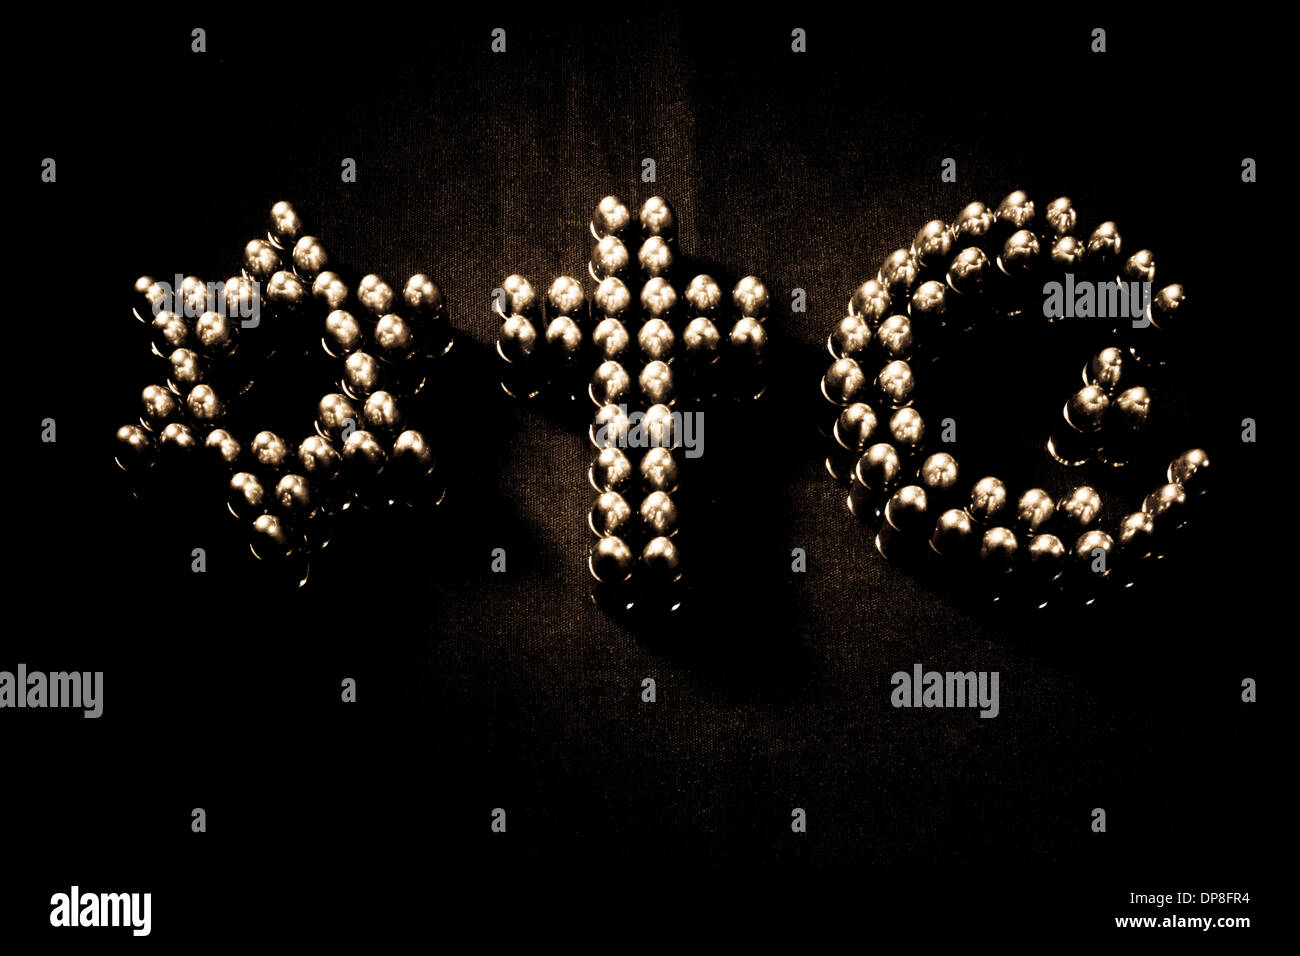 Symbols of abrahamic death cults stock photo 65341560 alamy symbols of abrahamic death cults biocorpaavc Images